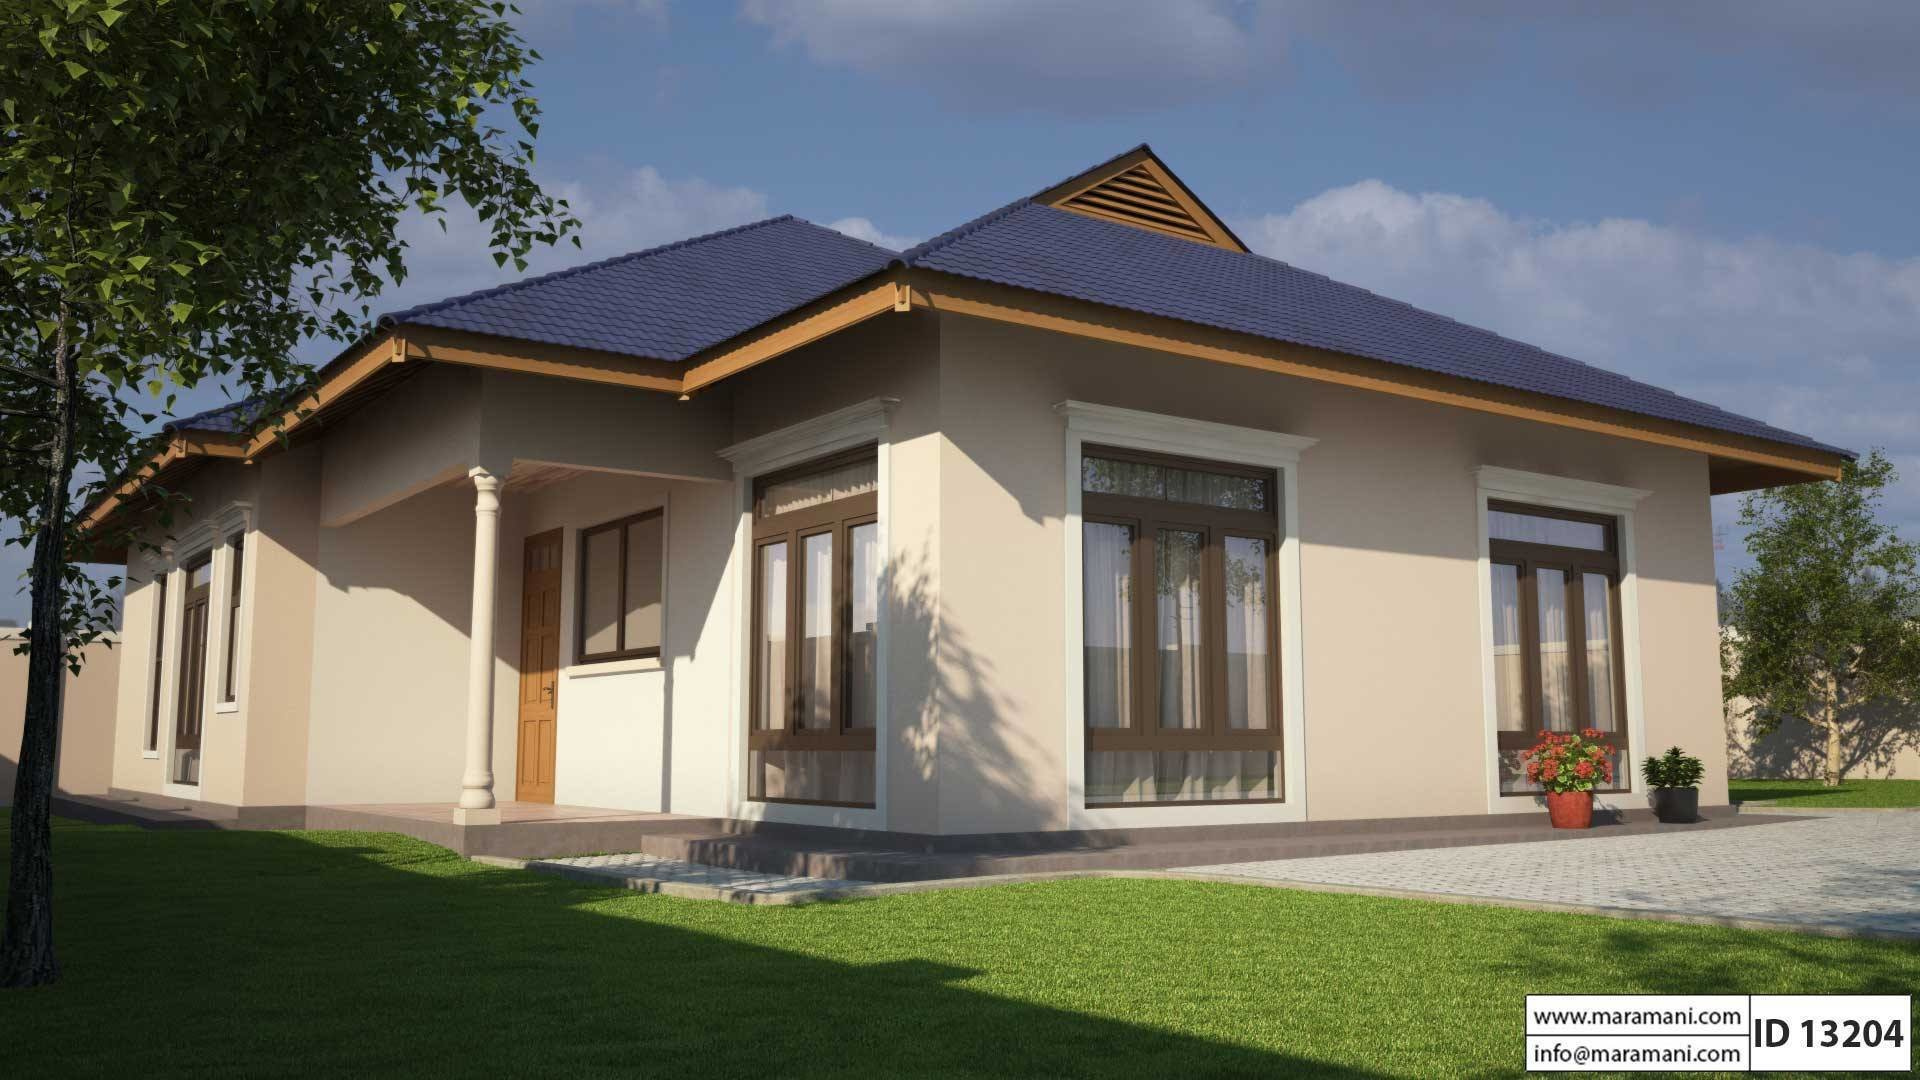 Best Three Bedroom House Id 13204 Maramani Com With Pictures